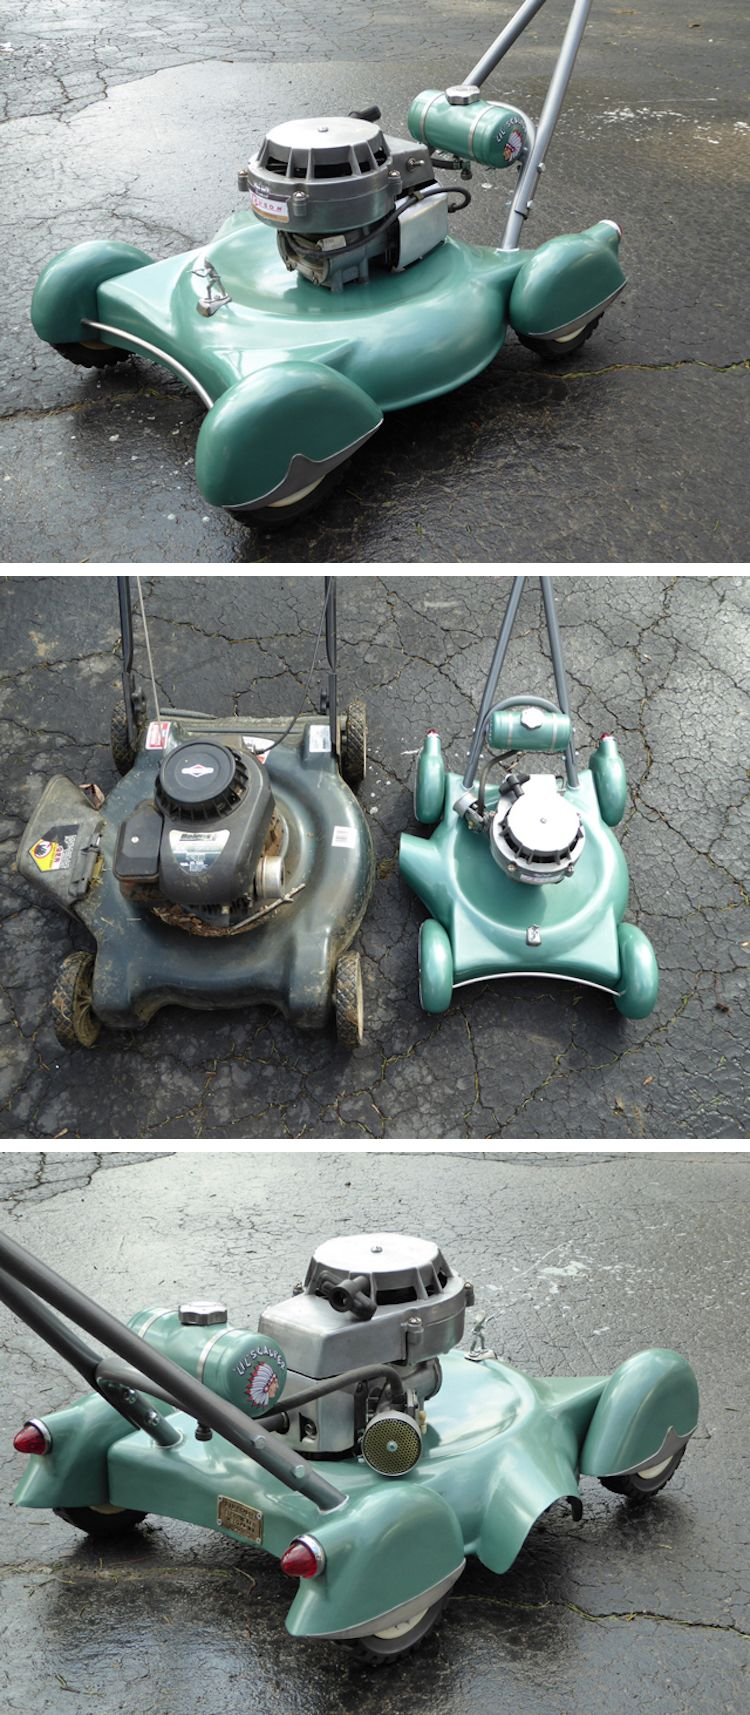 Retro Diy Lawn Mowers Inspired By Classic Cars Cars Minis And